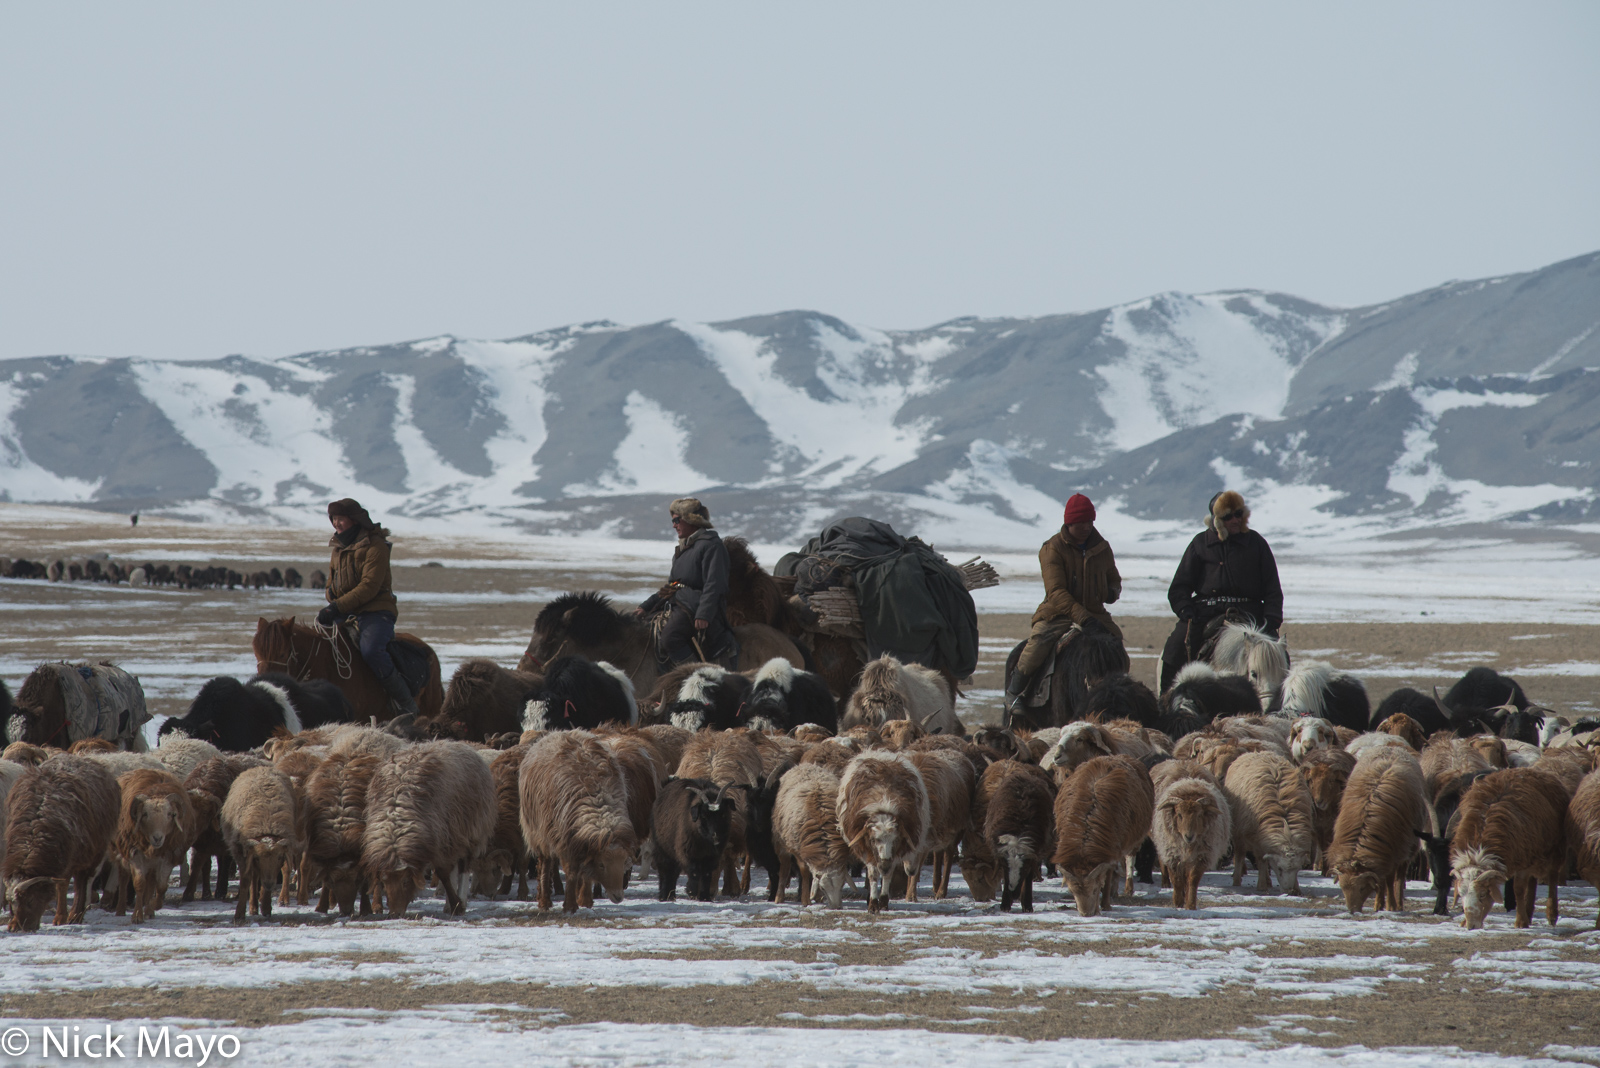 Bayan-Ölgii, Camel, Goat, Horse, Kazakh, Mongolia, Pack Animal, Sheep, Yak, photo